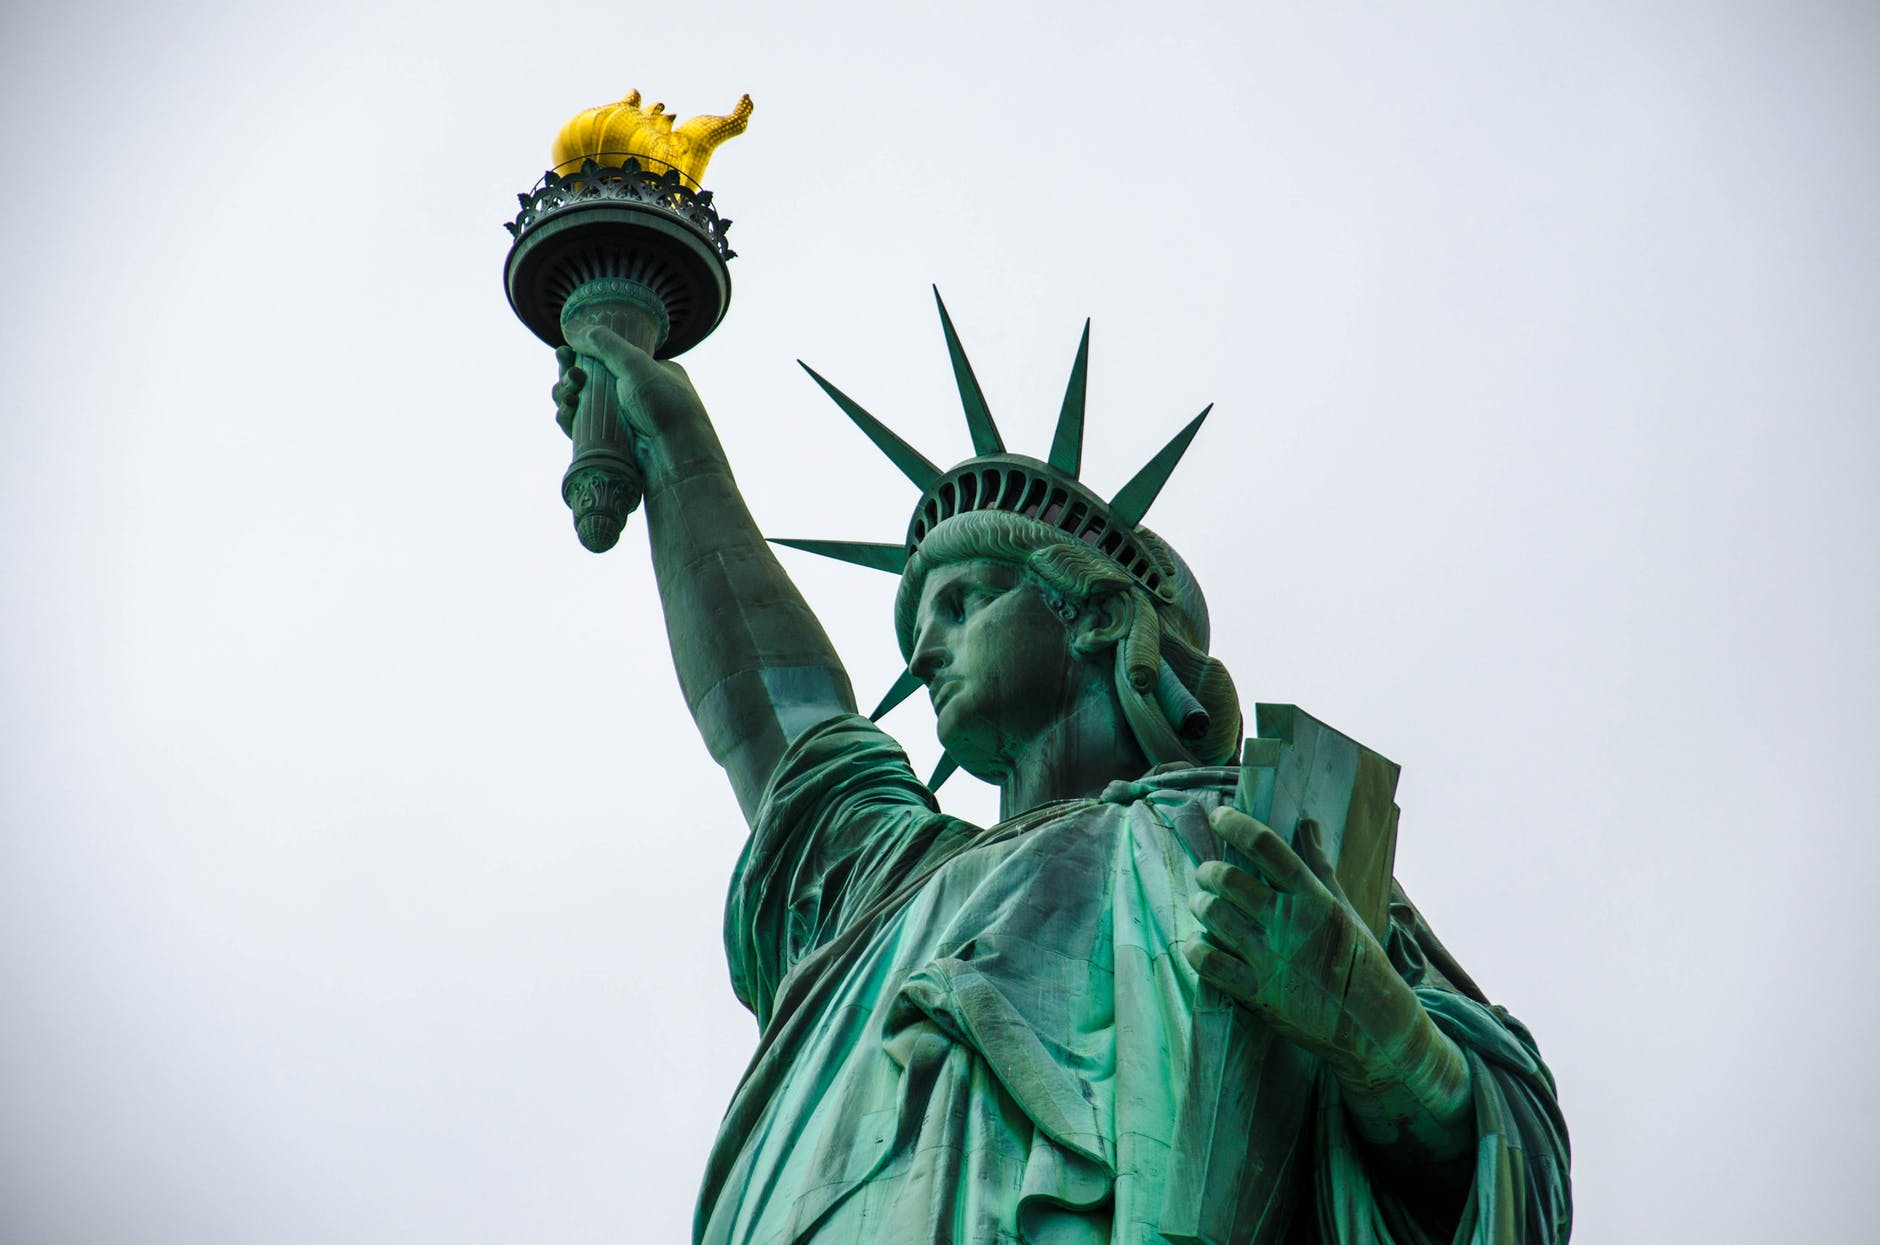 worms eye view photography of statue of liberty